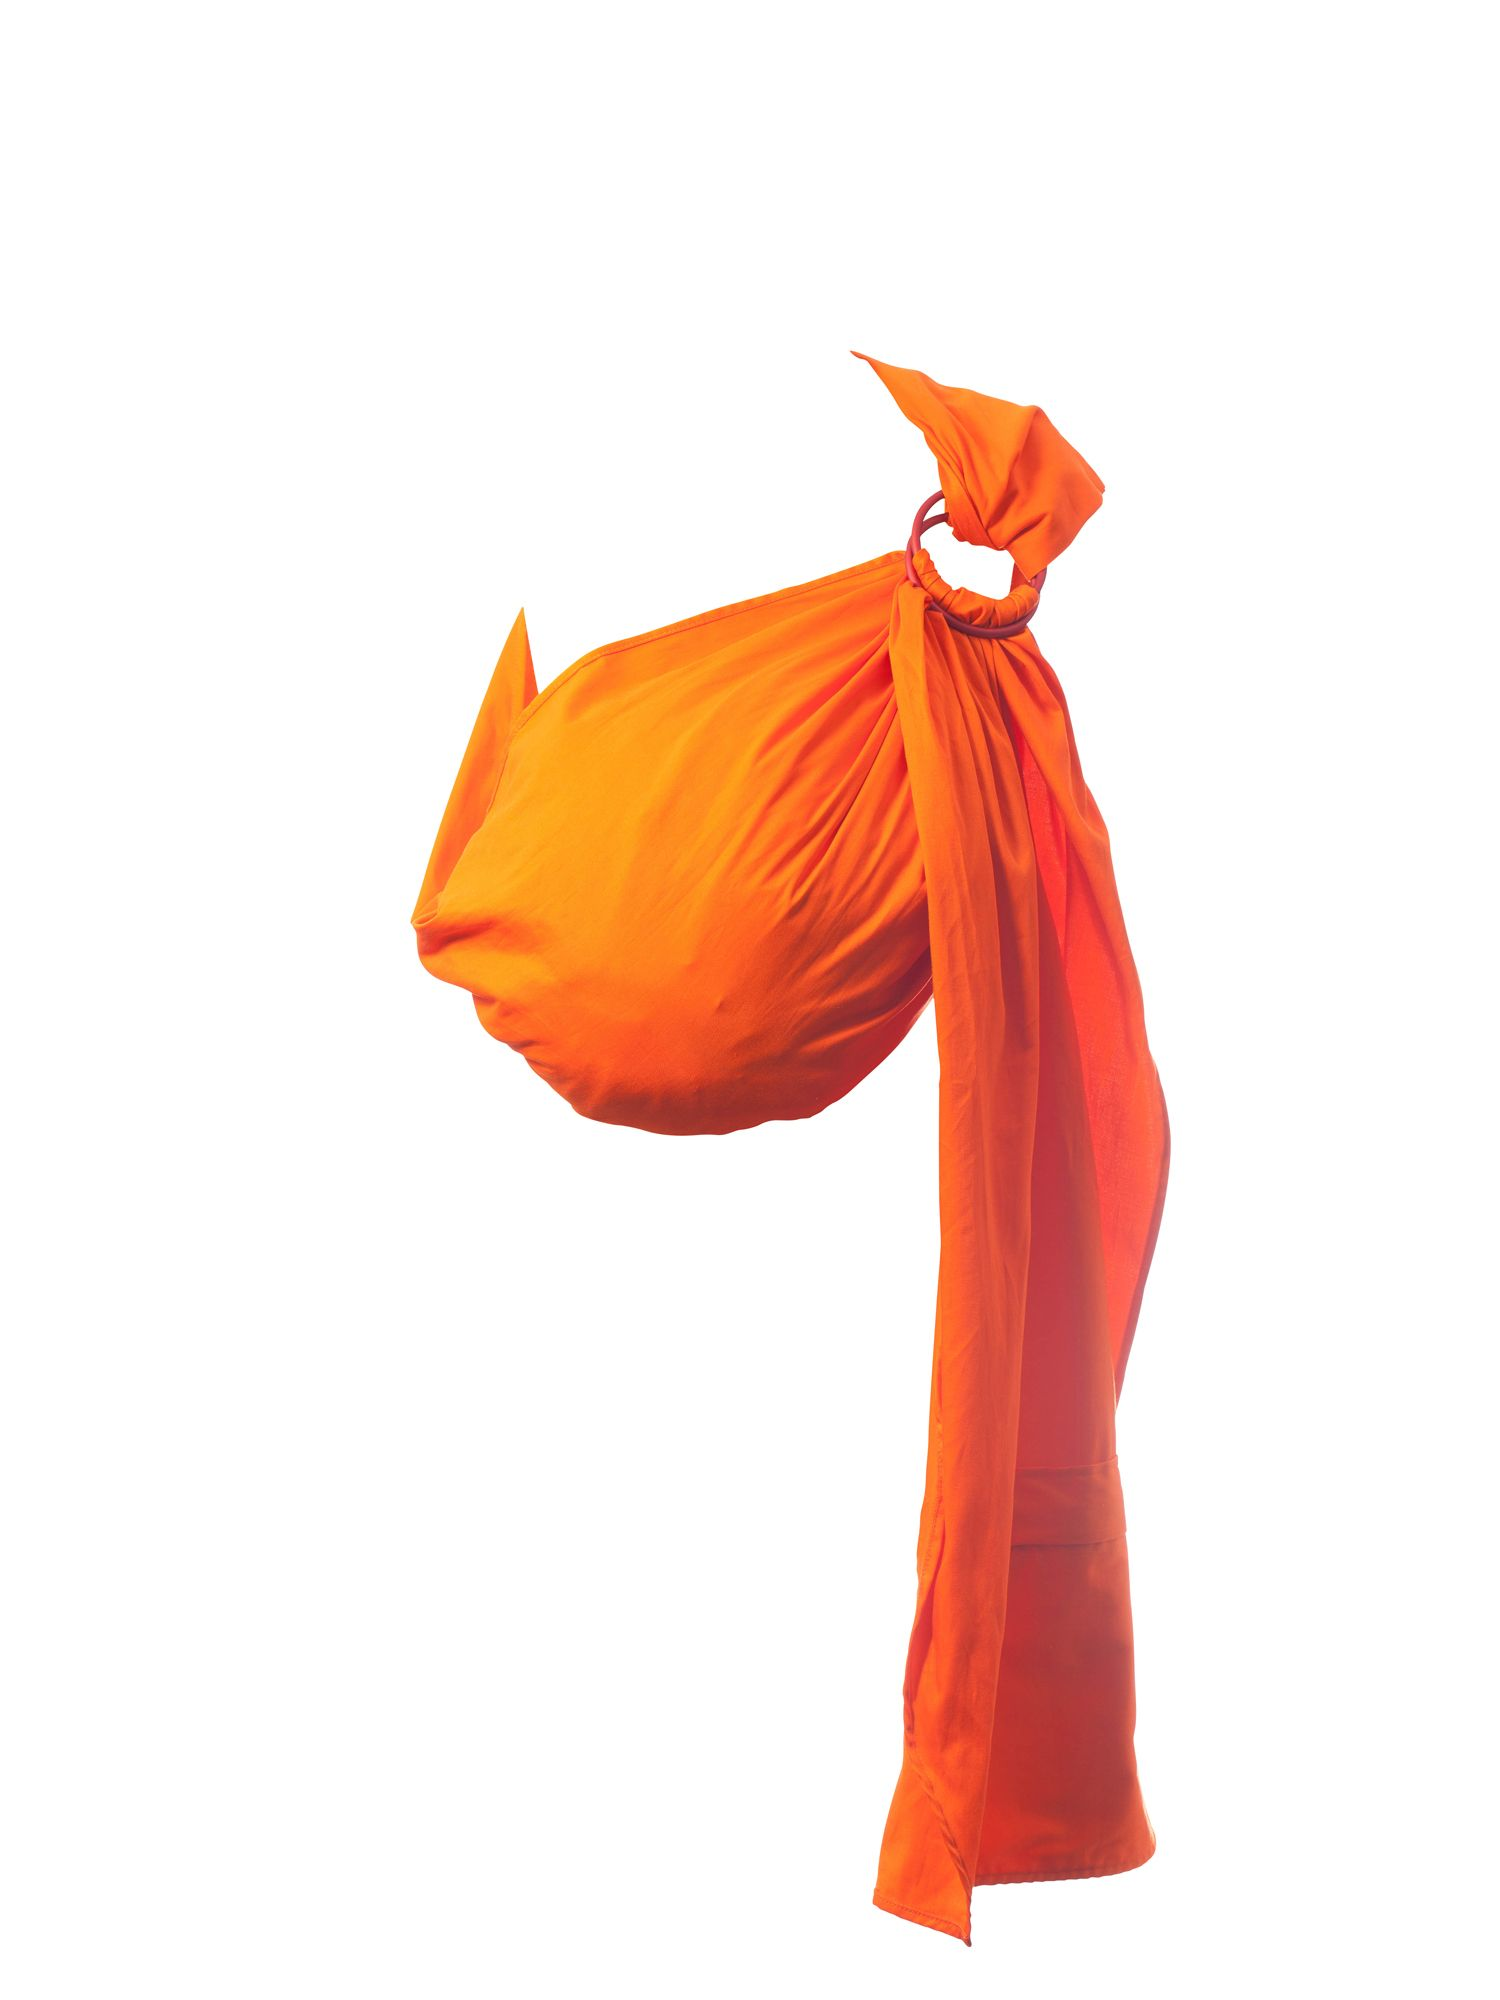 Rockin' Baby Rockin' Baby Orange Hero - Single Ply Sling